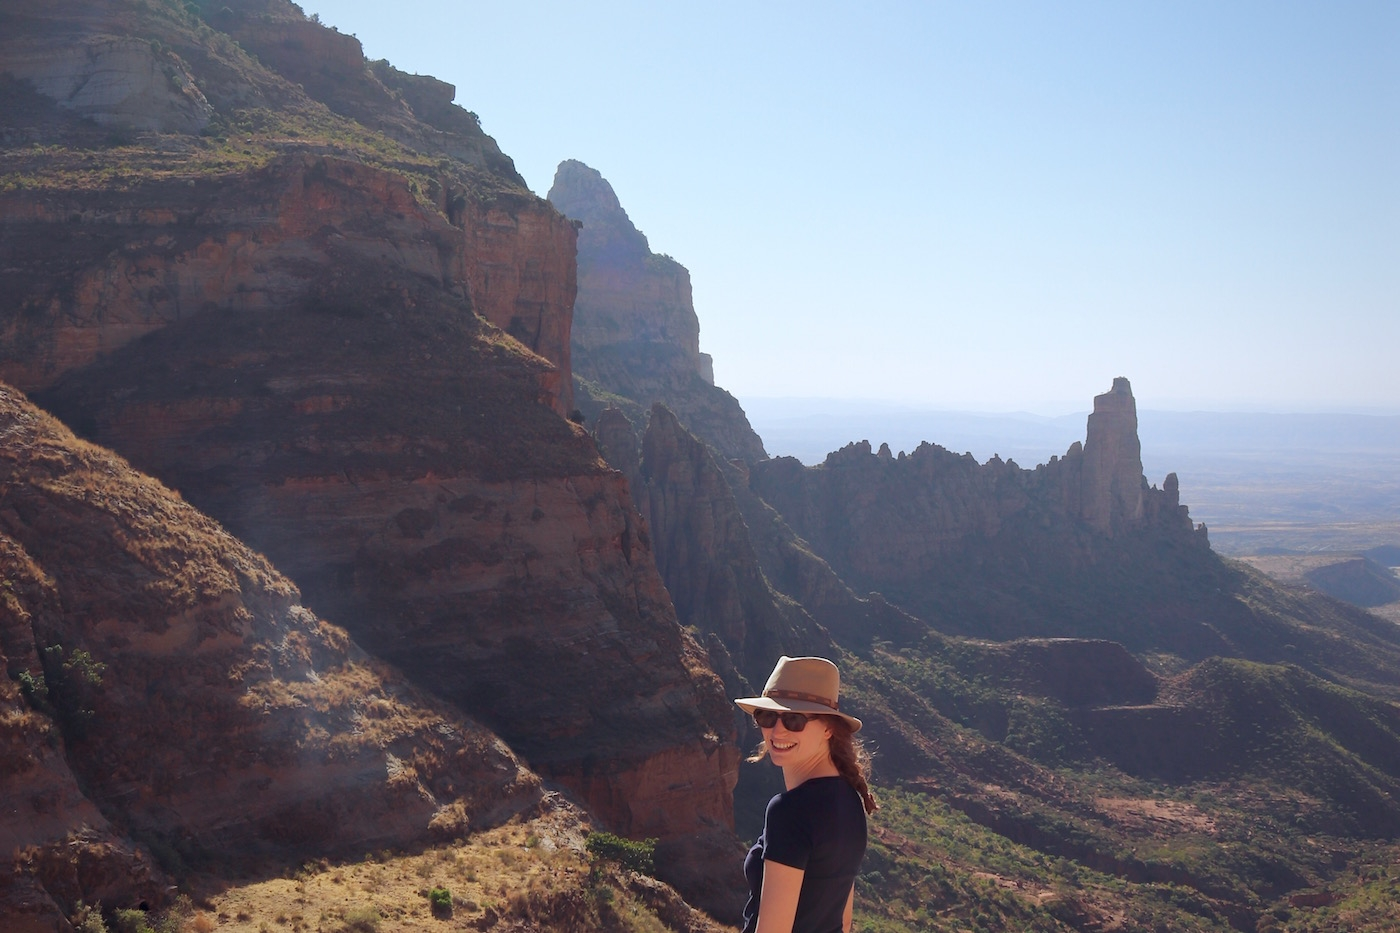 Hiking to the rock-hewn churches of Tigray, Ethiopia